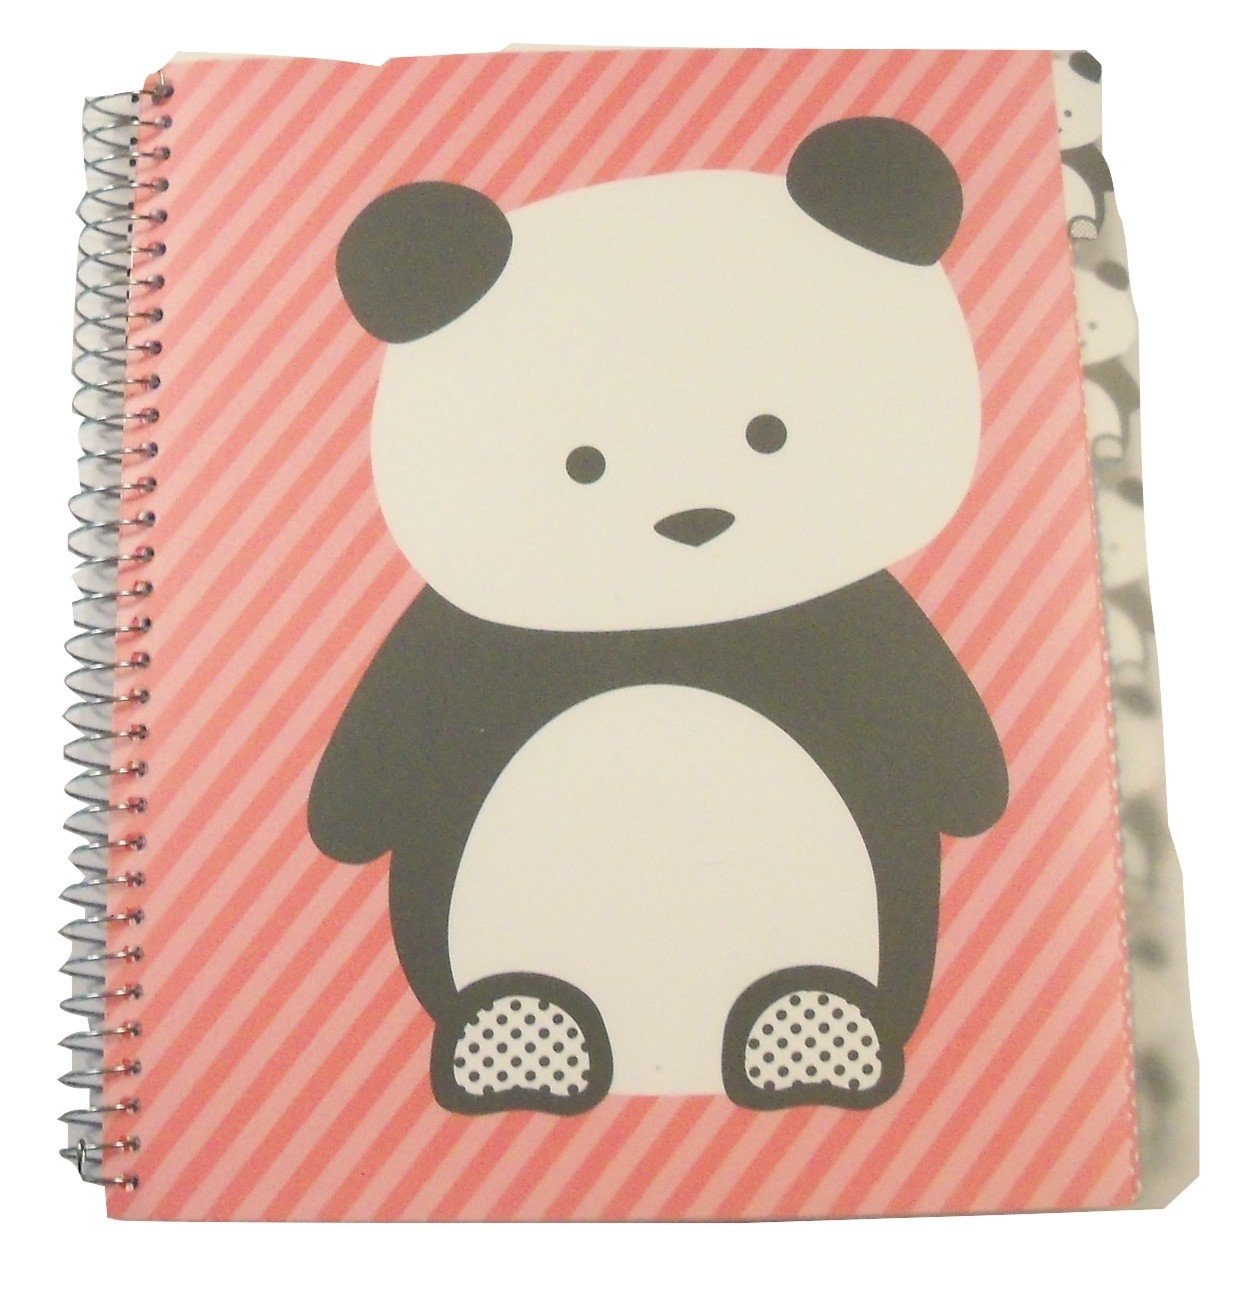 Carolina Pad Studio C College Ruled Poly Cover 5-Subject Spiral Notebook ~ Hair of the Dog (Panda on Pink Stripes; 150 Sheets, 300 Pages)